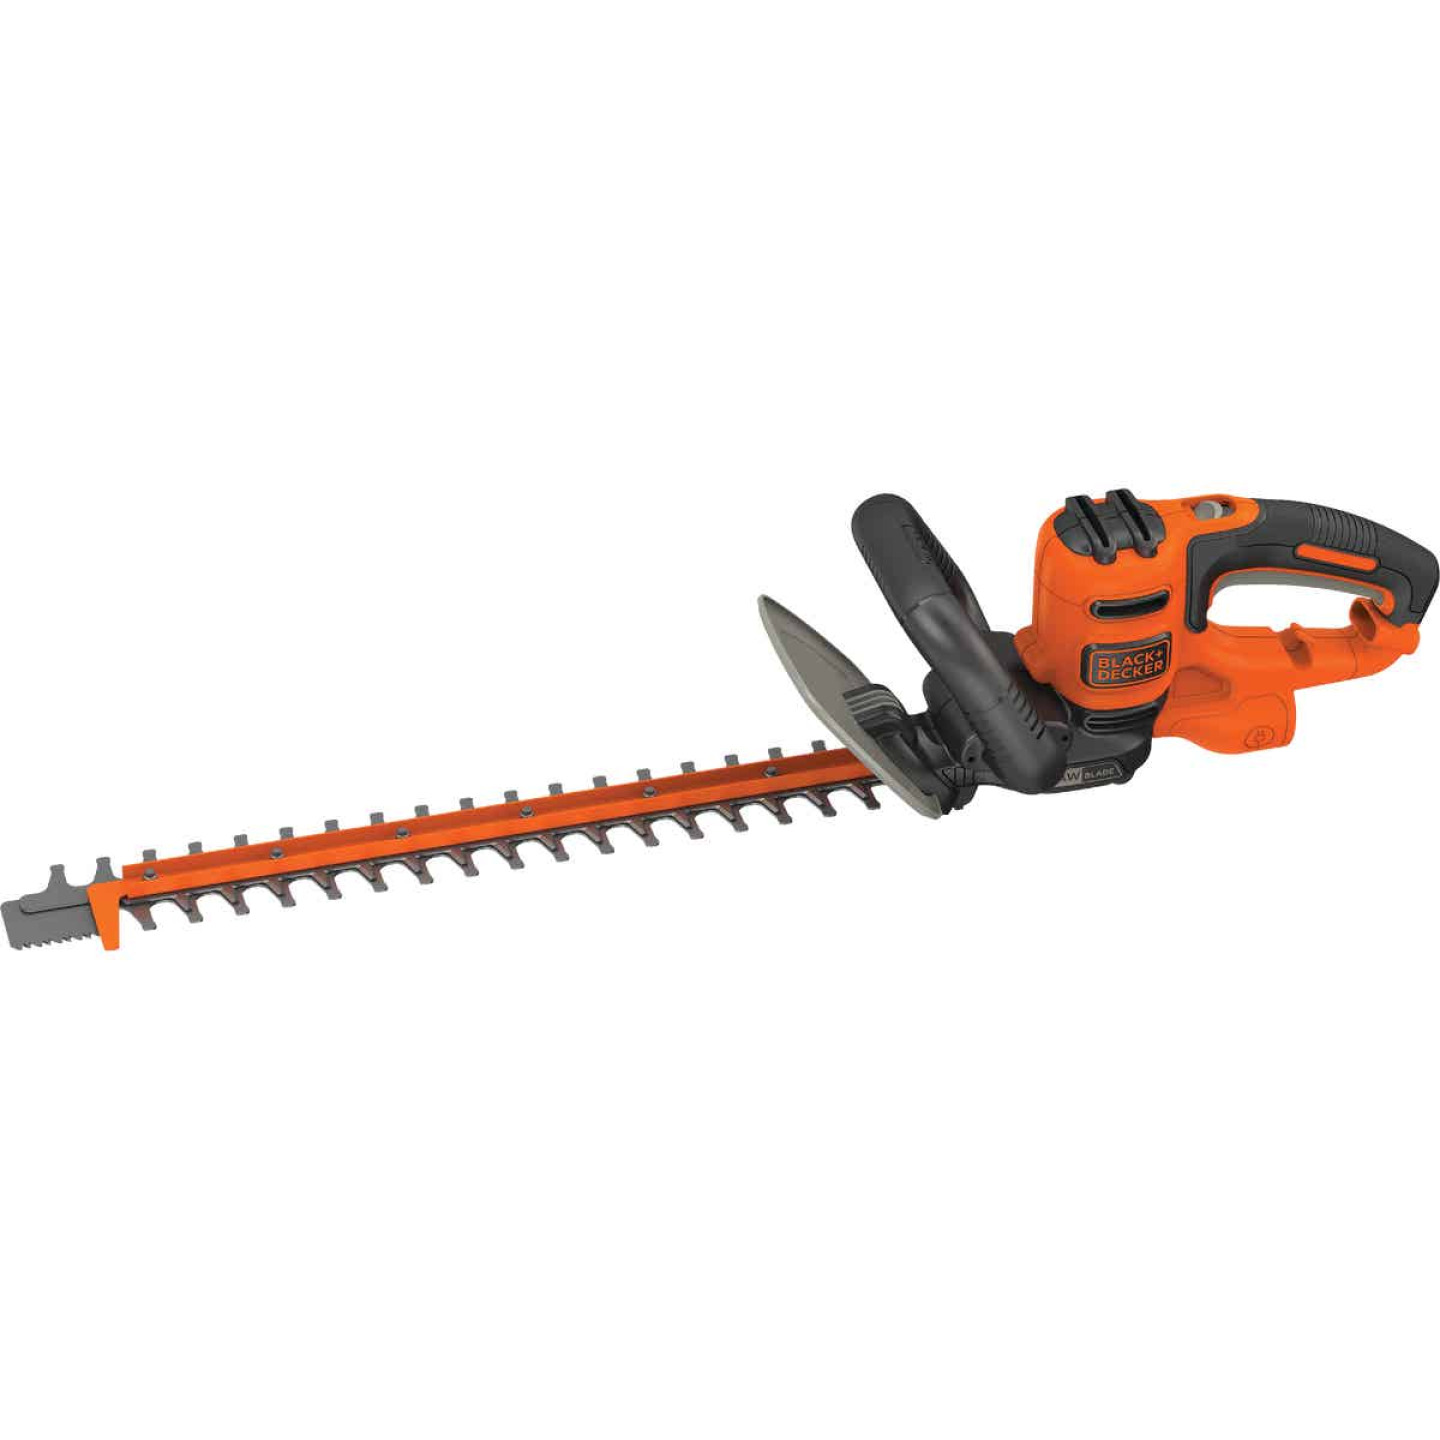 Black & Decker Sawblade 20 In. 3A Corded Electric Hedge Trimmer Image 1